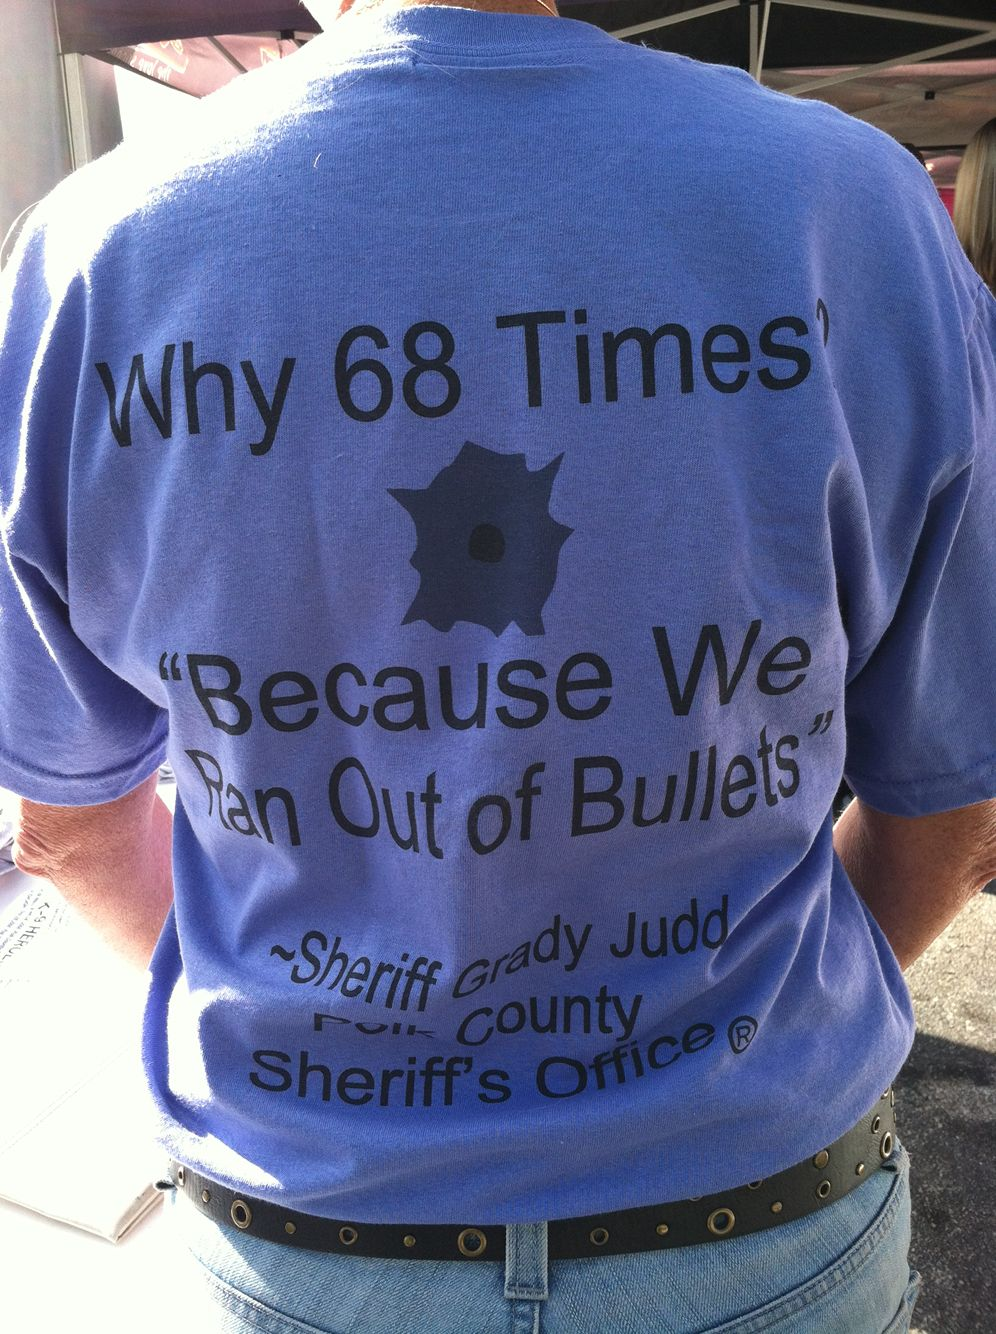 Sheriff Grady Judd Famous Quotes: Sheriff Grady Judd..... I'd Stay Out Of Polk County